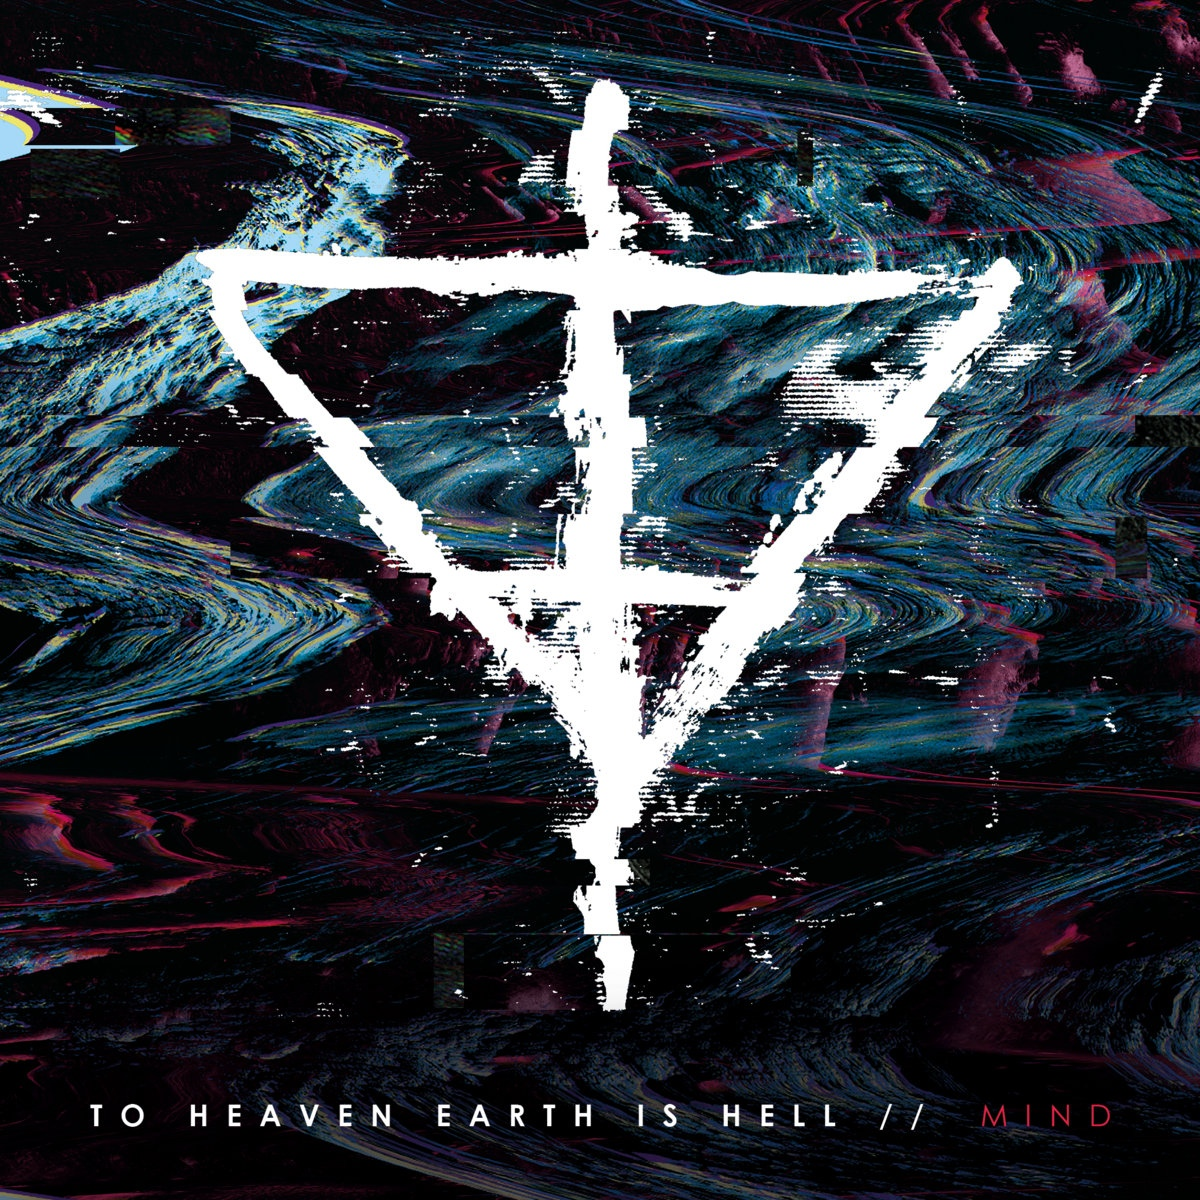 To Heaven Earth Is Hell - M!nd